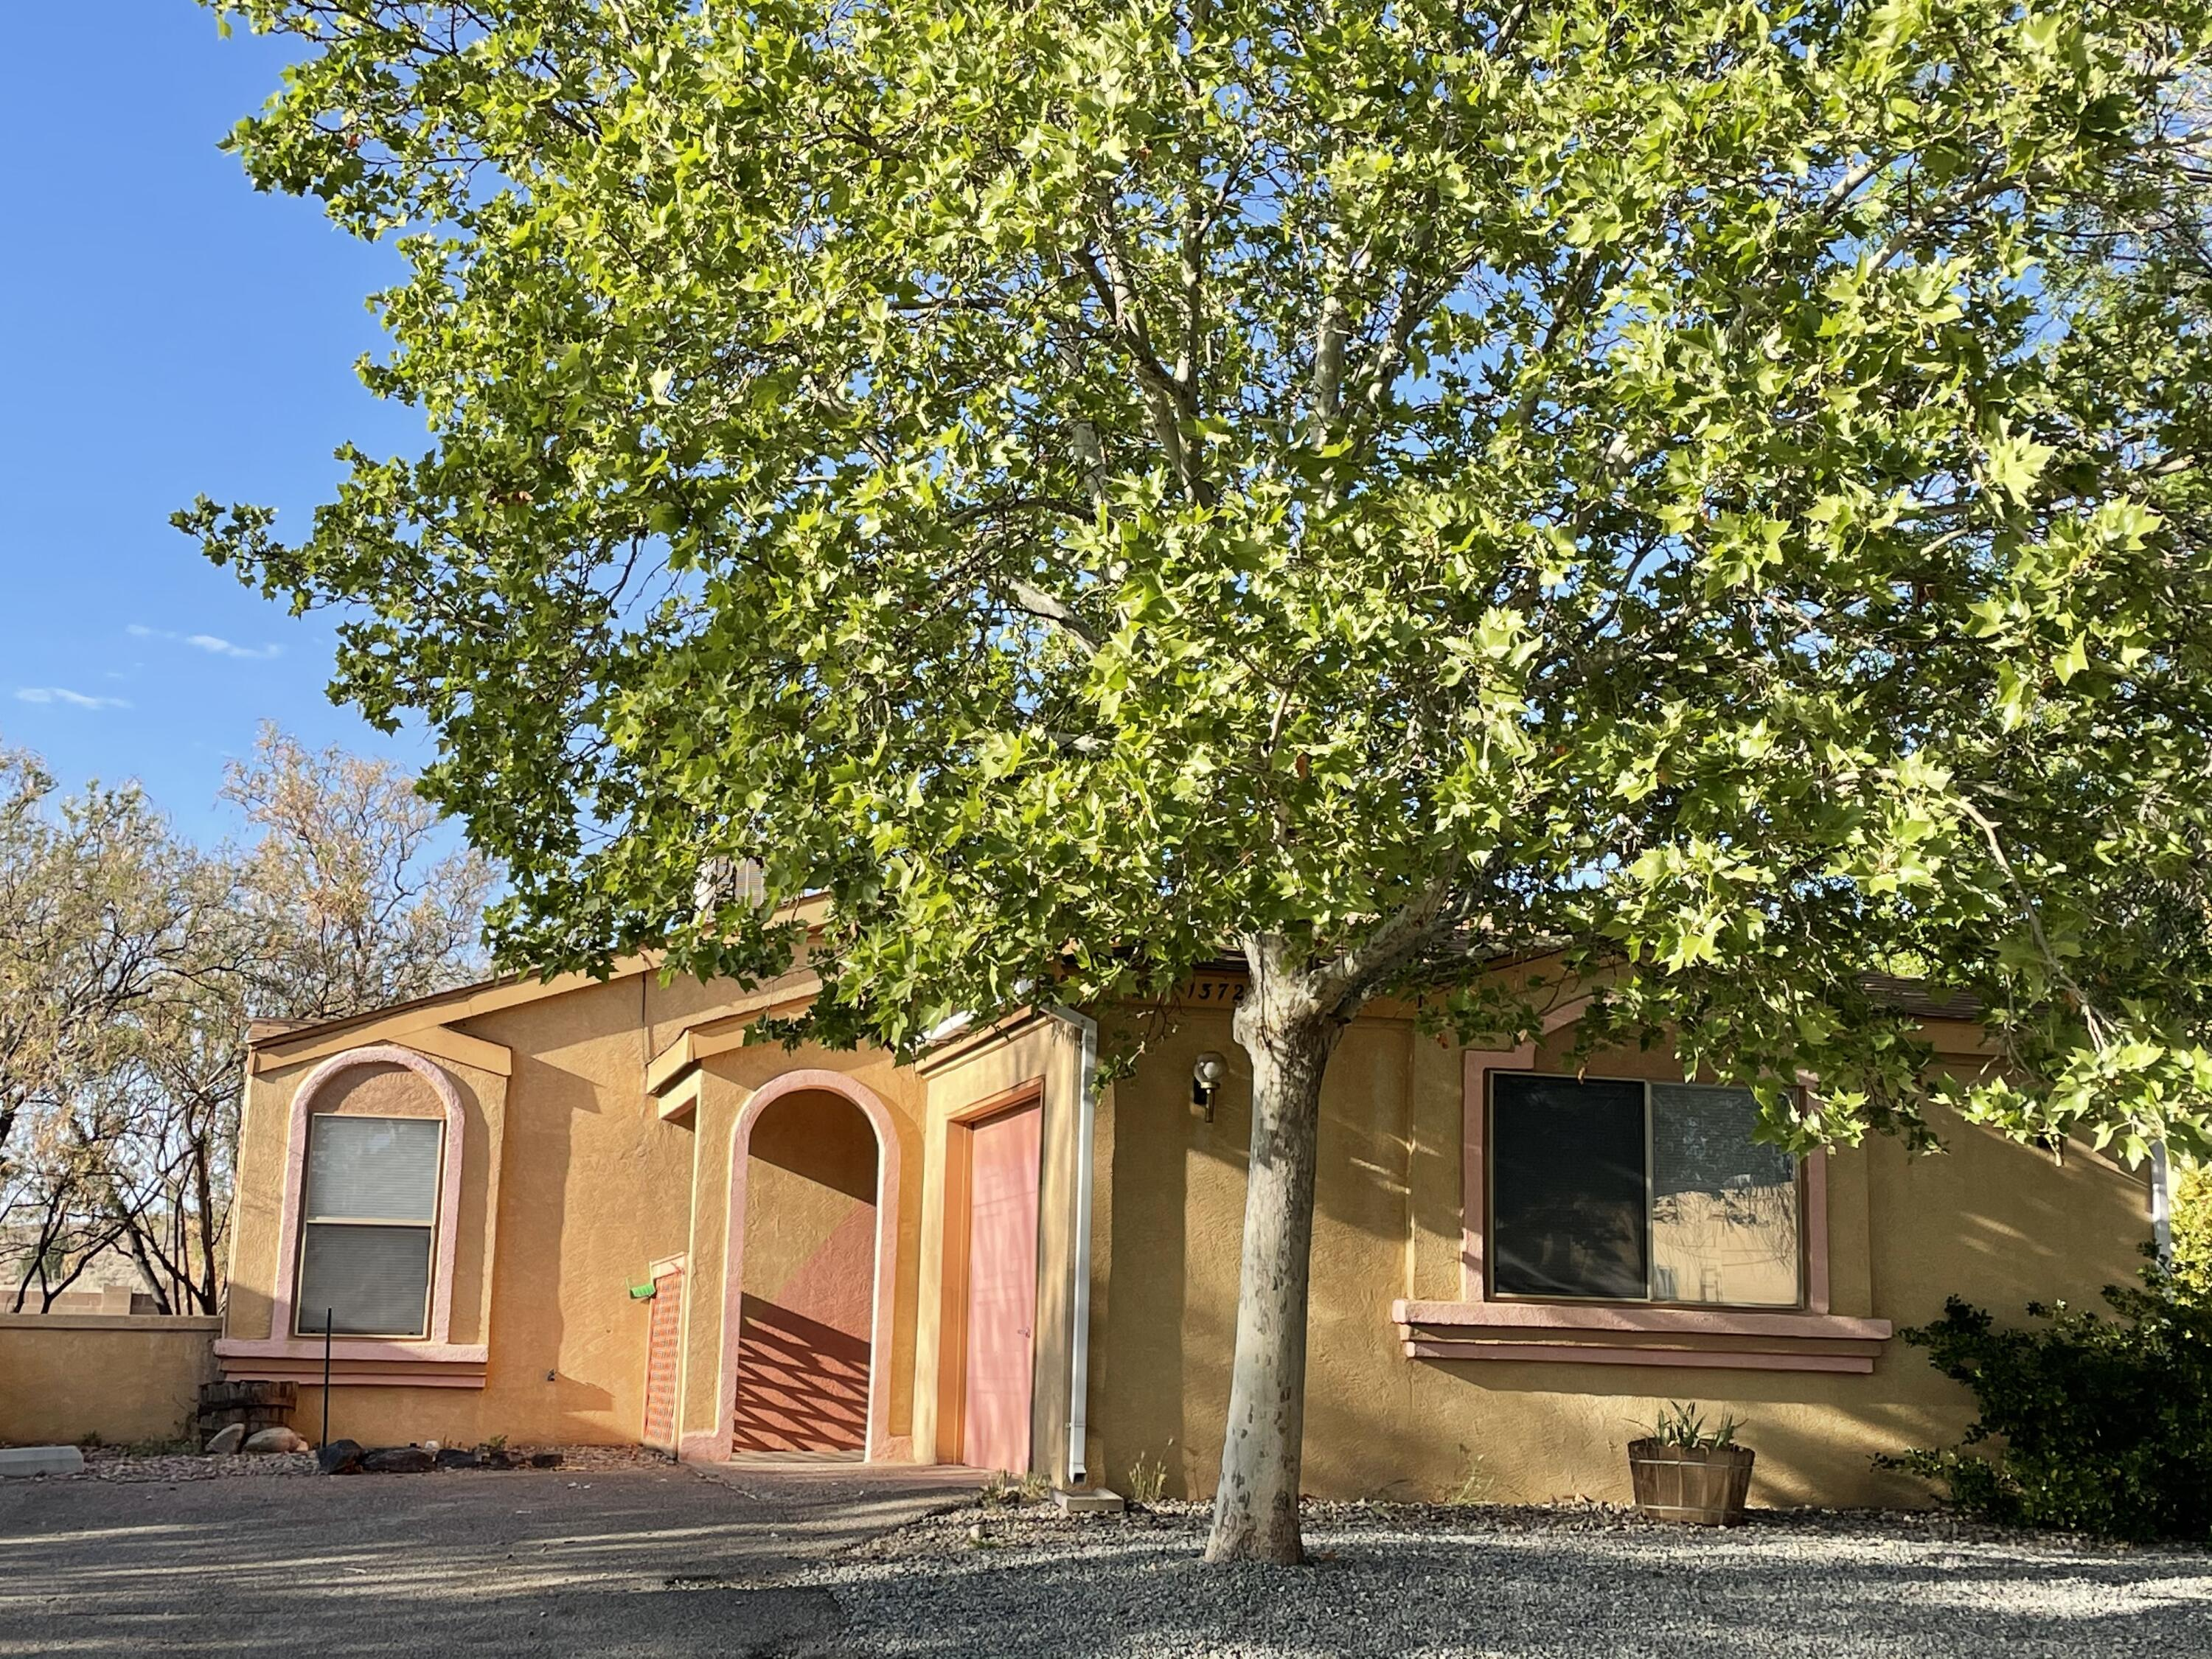 2 BR * 2 BA * 1 CG * Fresh Paint * NEW Garage Door Opener with 2 remotes * NEW MBA shower * NEW MBA toilet * NEW blinds * Carpets & Home have been Professionally Cleaned * All appliances convey! Lease Purchase Available $1350/month.